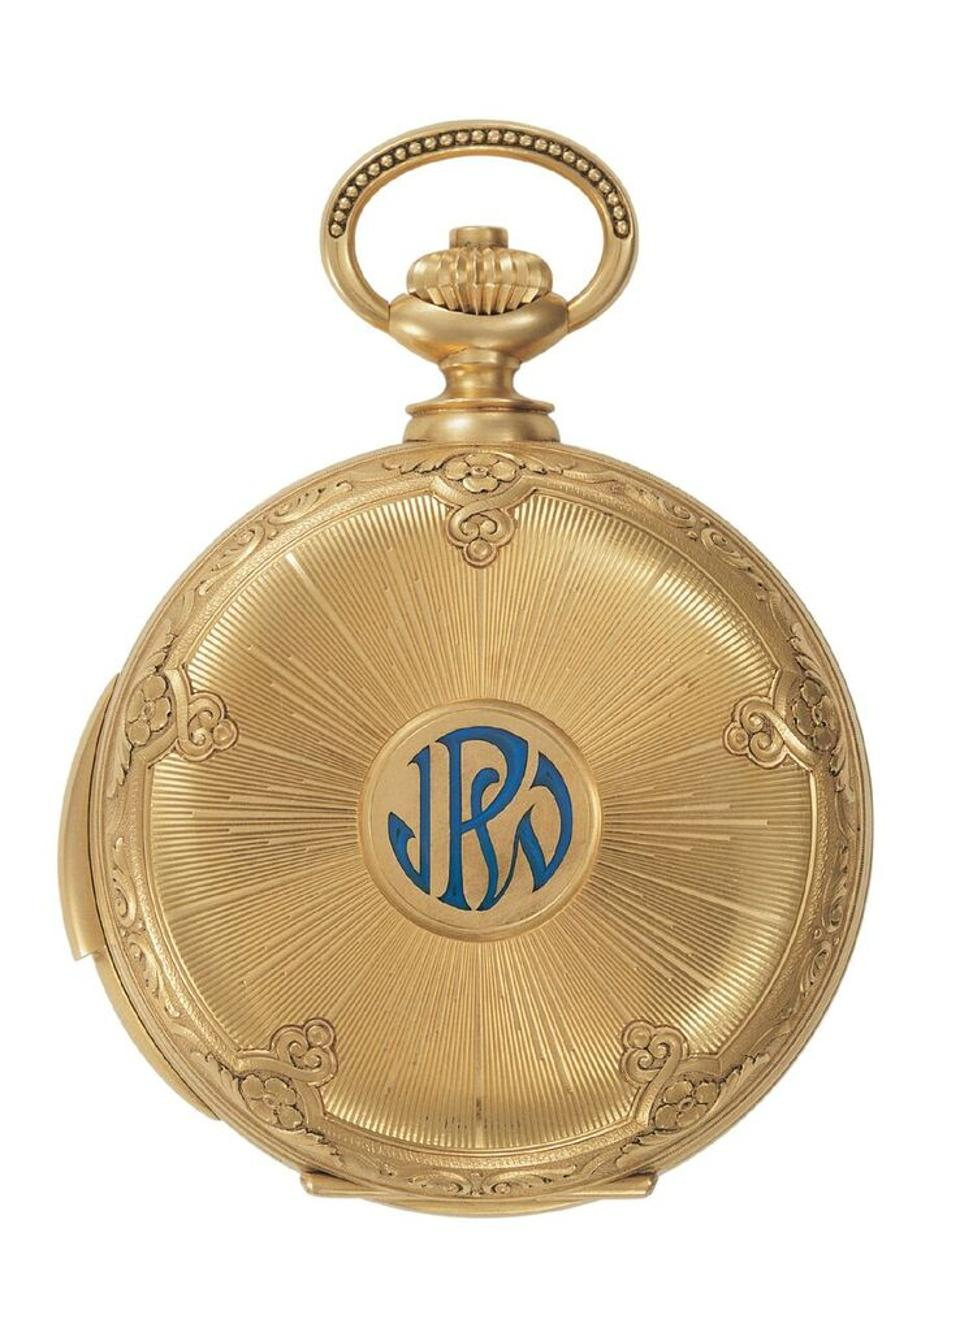 The 1927 James Ward Packard pocket watch is also on display at the Patek Philippe Art of Watches Grand Exhibition in New York.